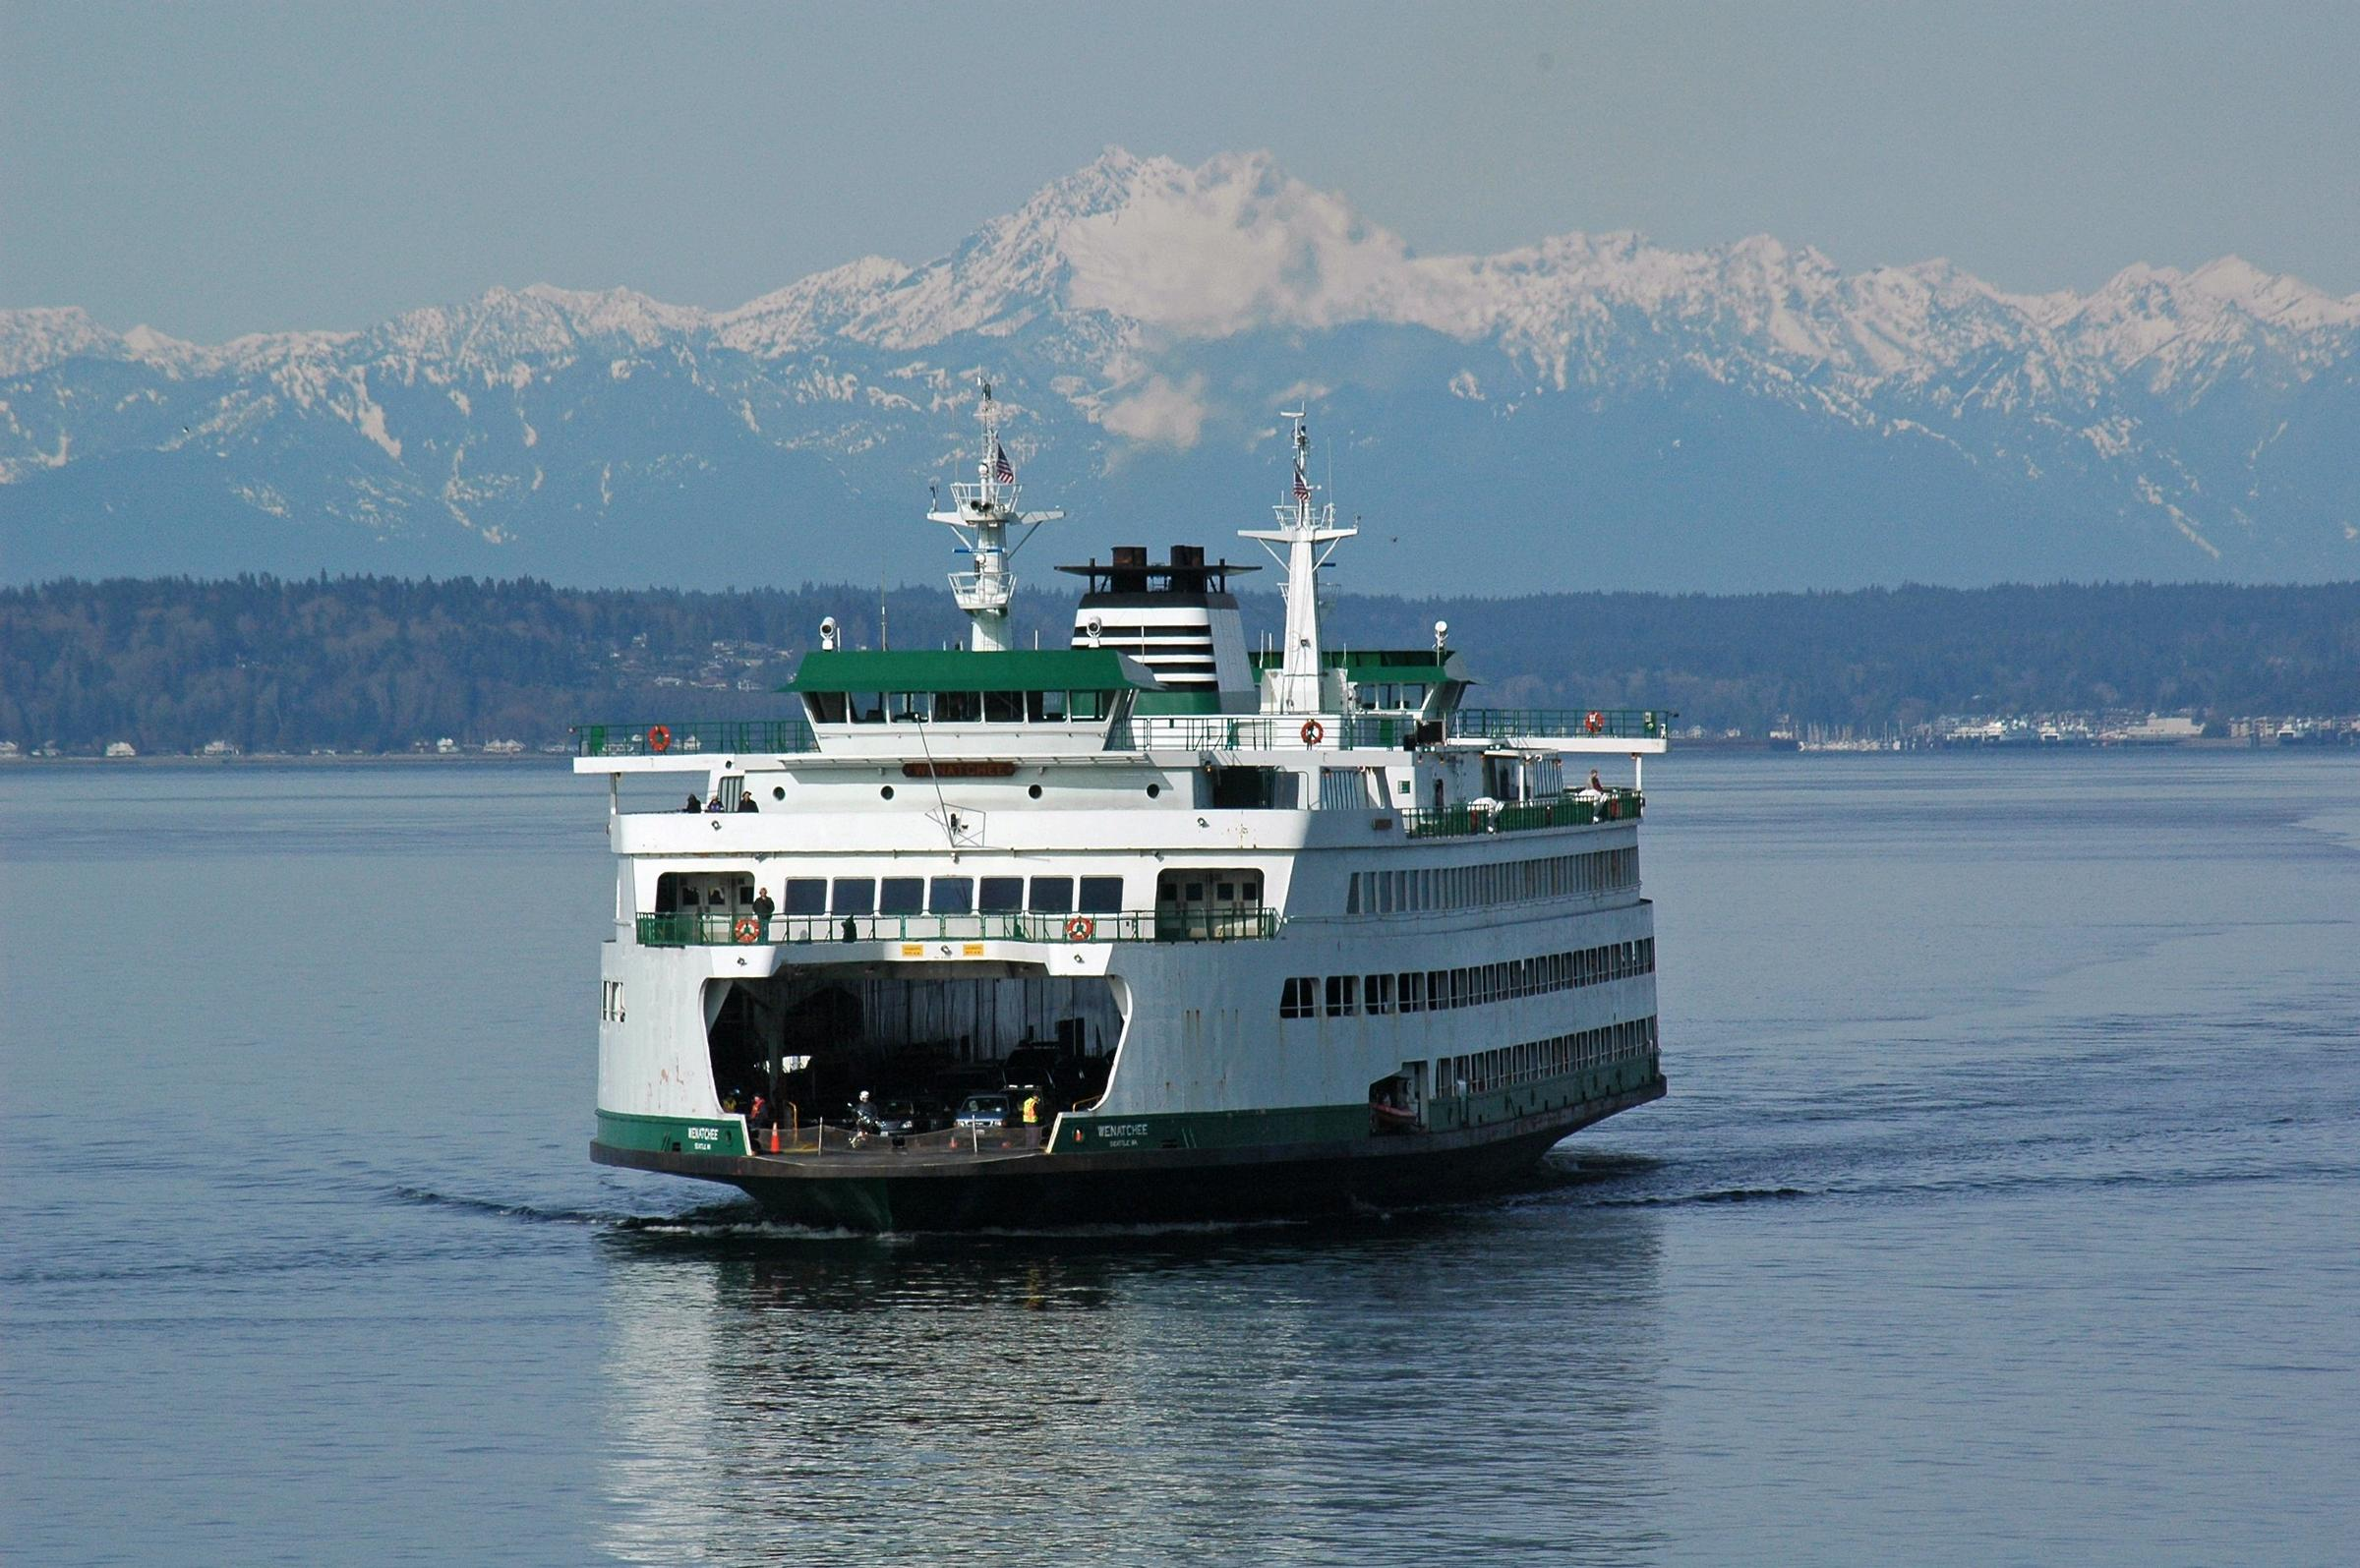 head of washington state ferries has plans to electrify the fleet | knkx